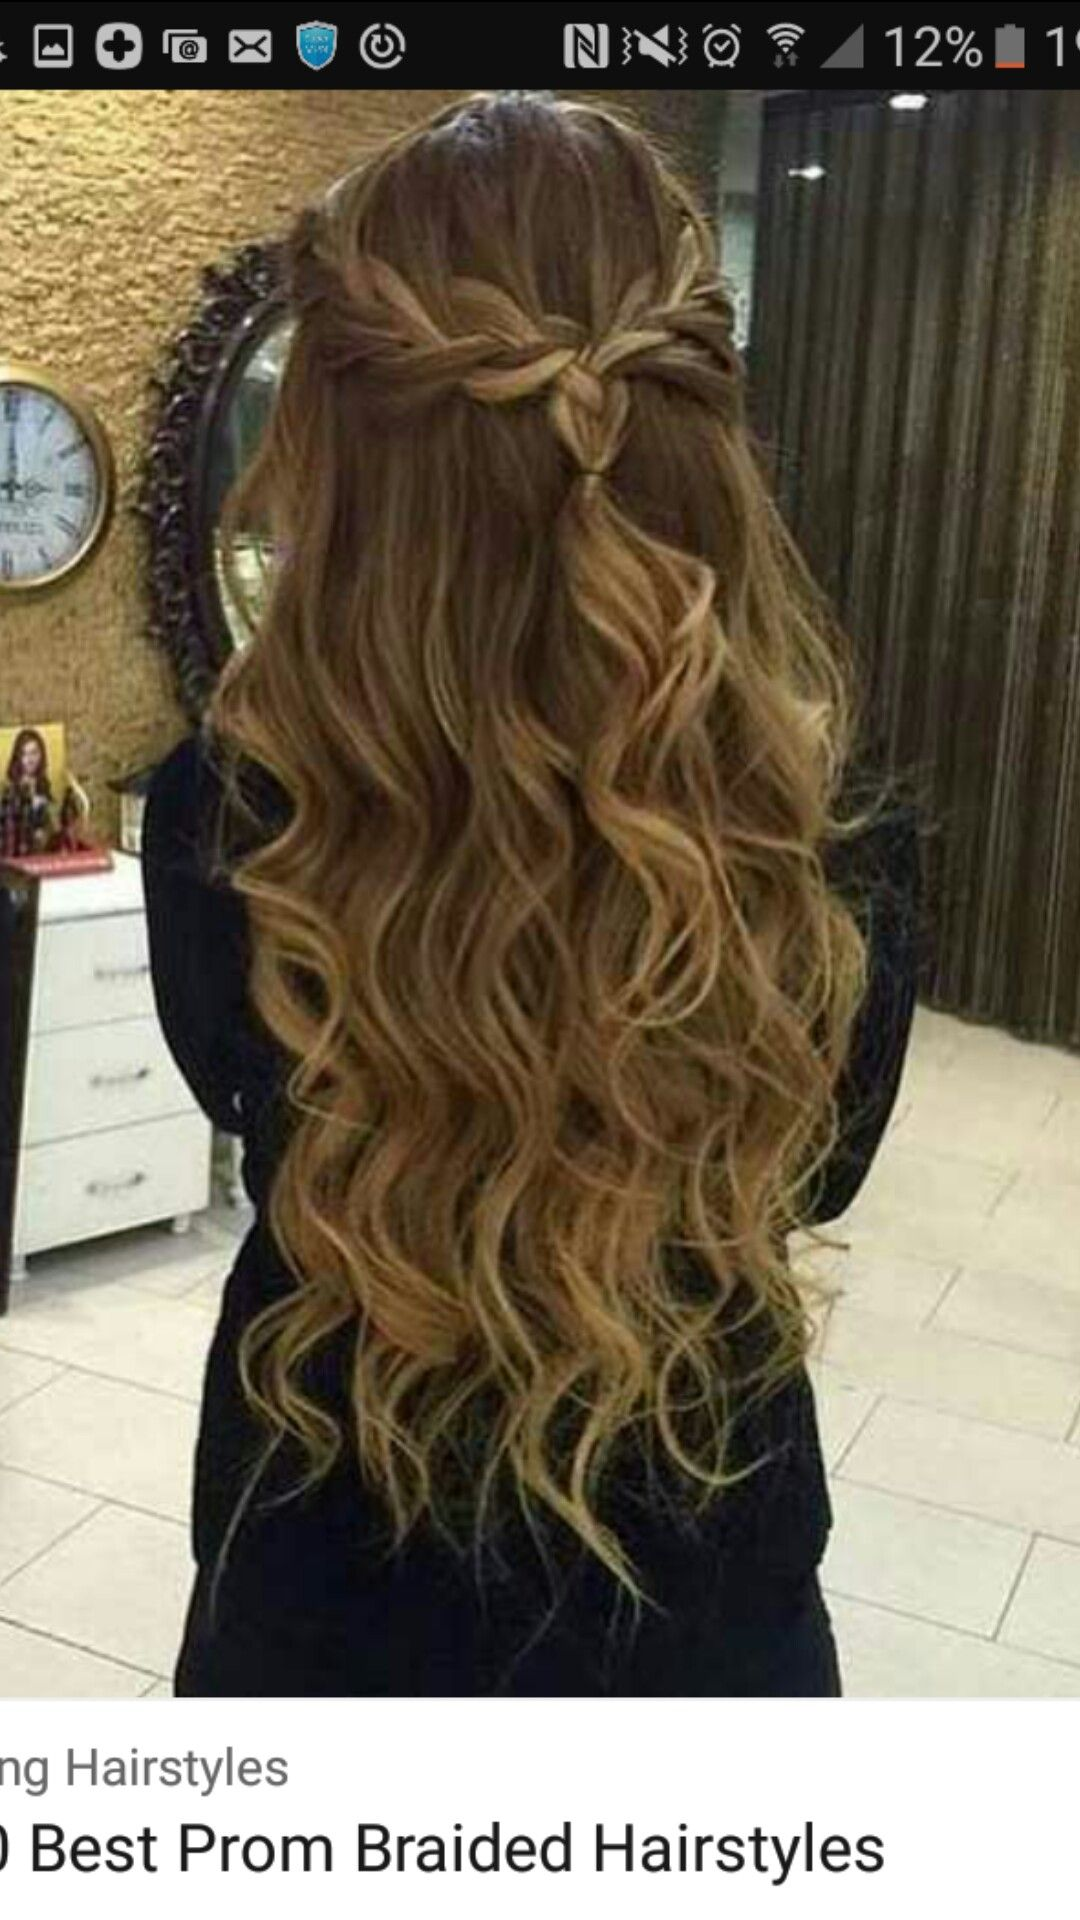 pin by jamie belcourt on military ball in 2019 | hair styles